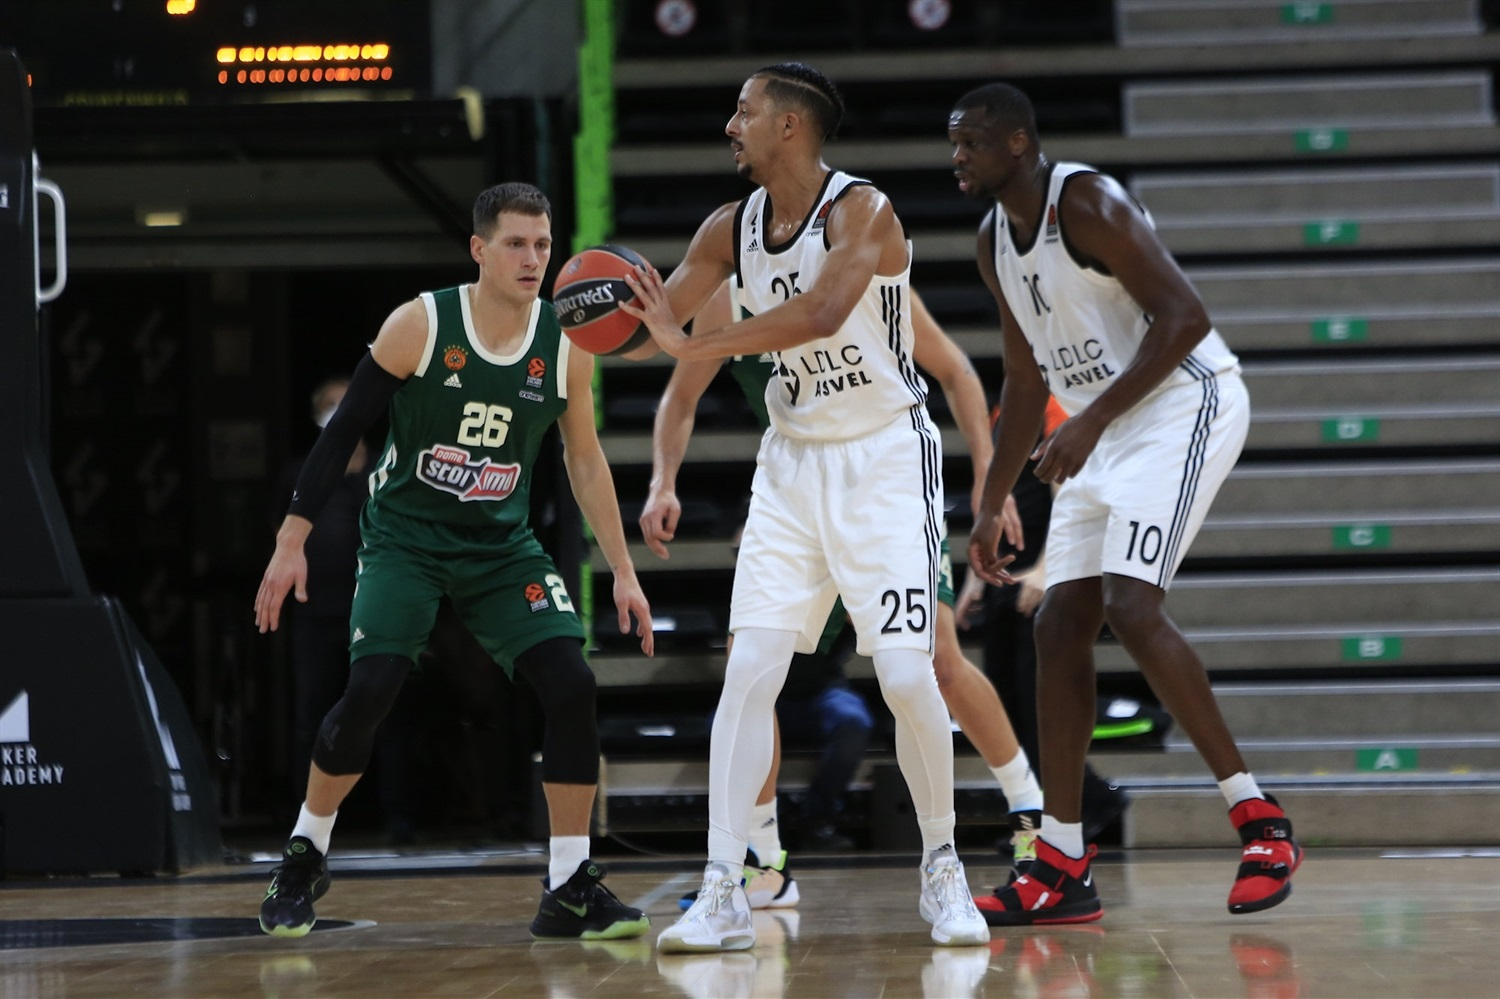 William Howard - LDLC ASVEL Villeurbanne - EB20